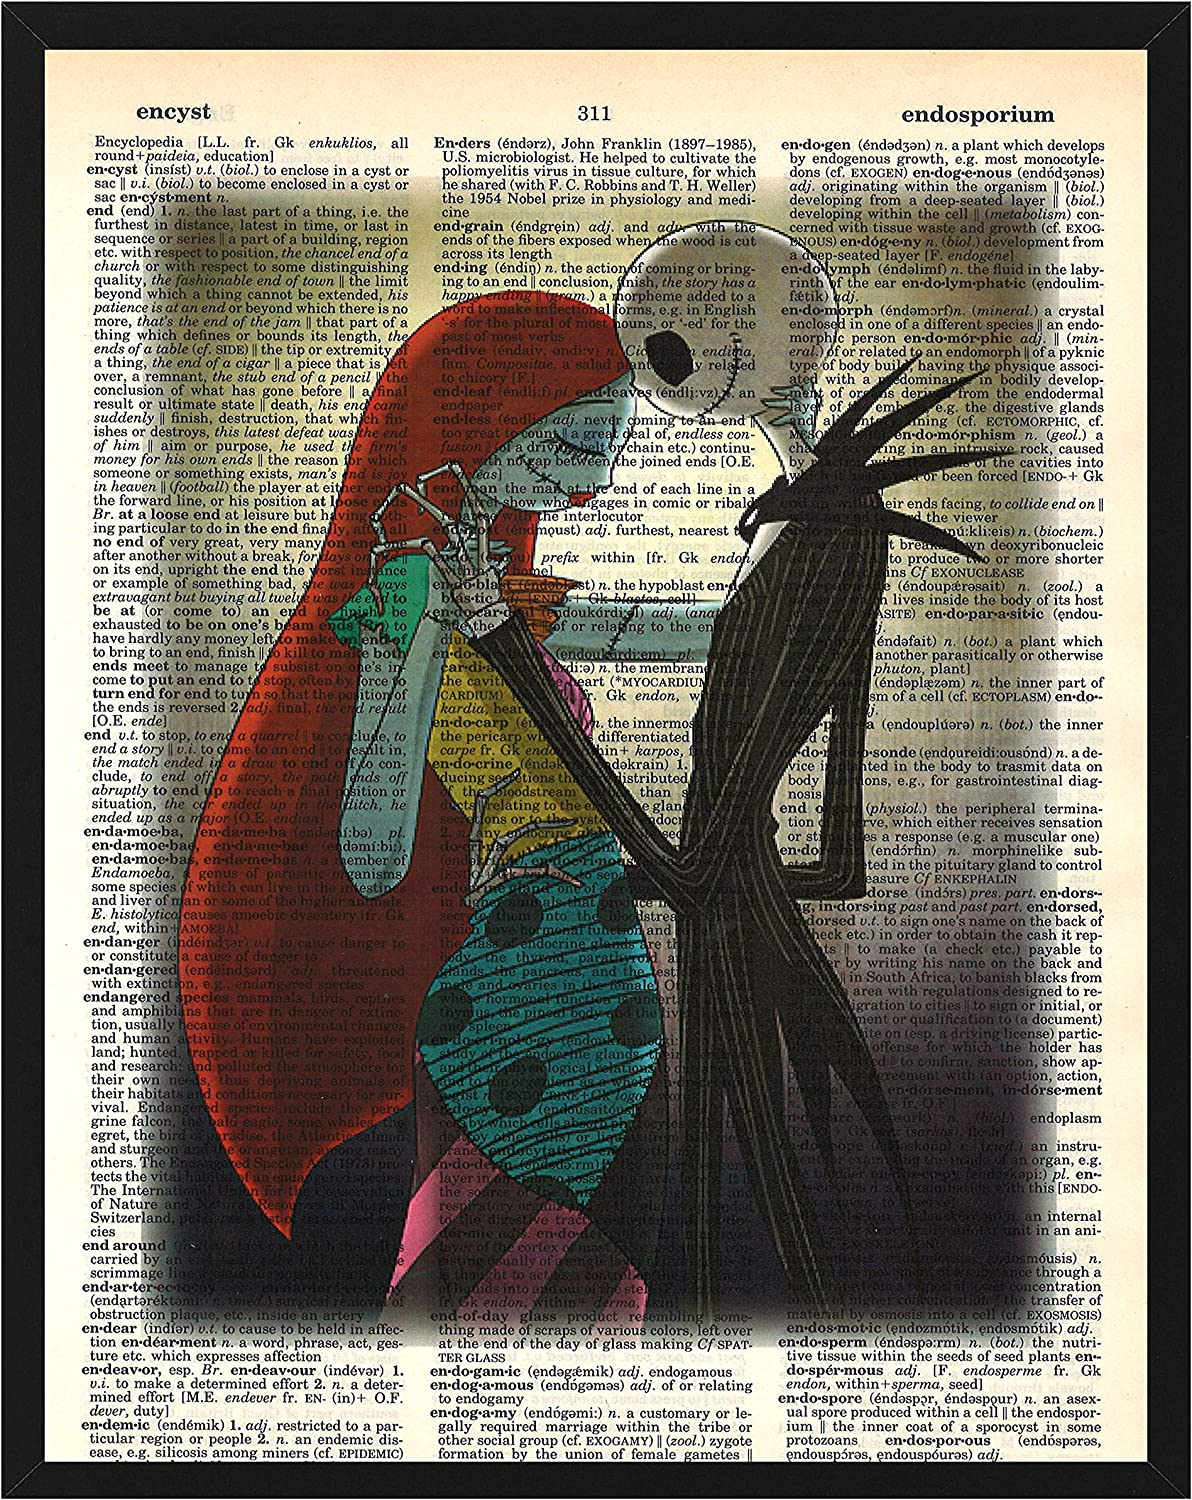 Jack and Sally in Love Wall Decor Jack Skellington from Nightmare Before Christmas Dictionary Art Print 8 x 10